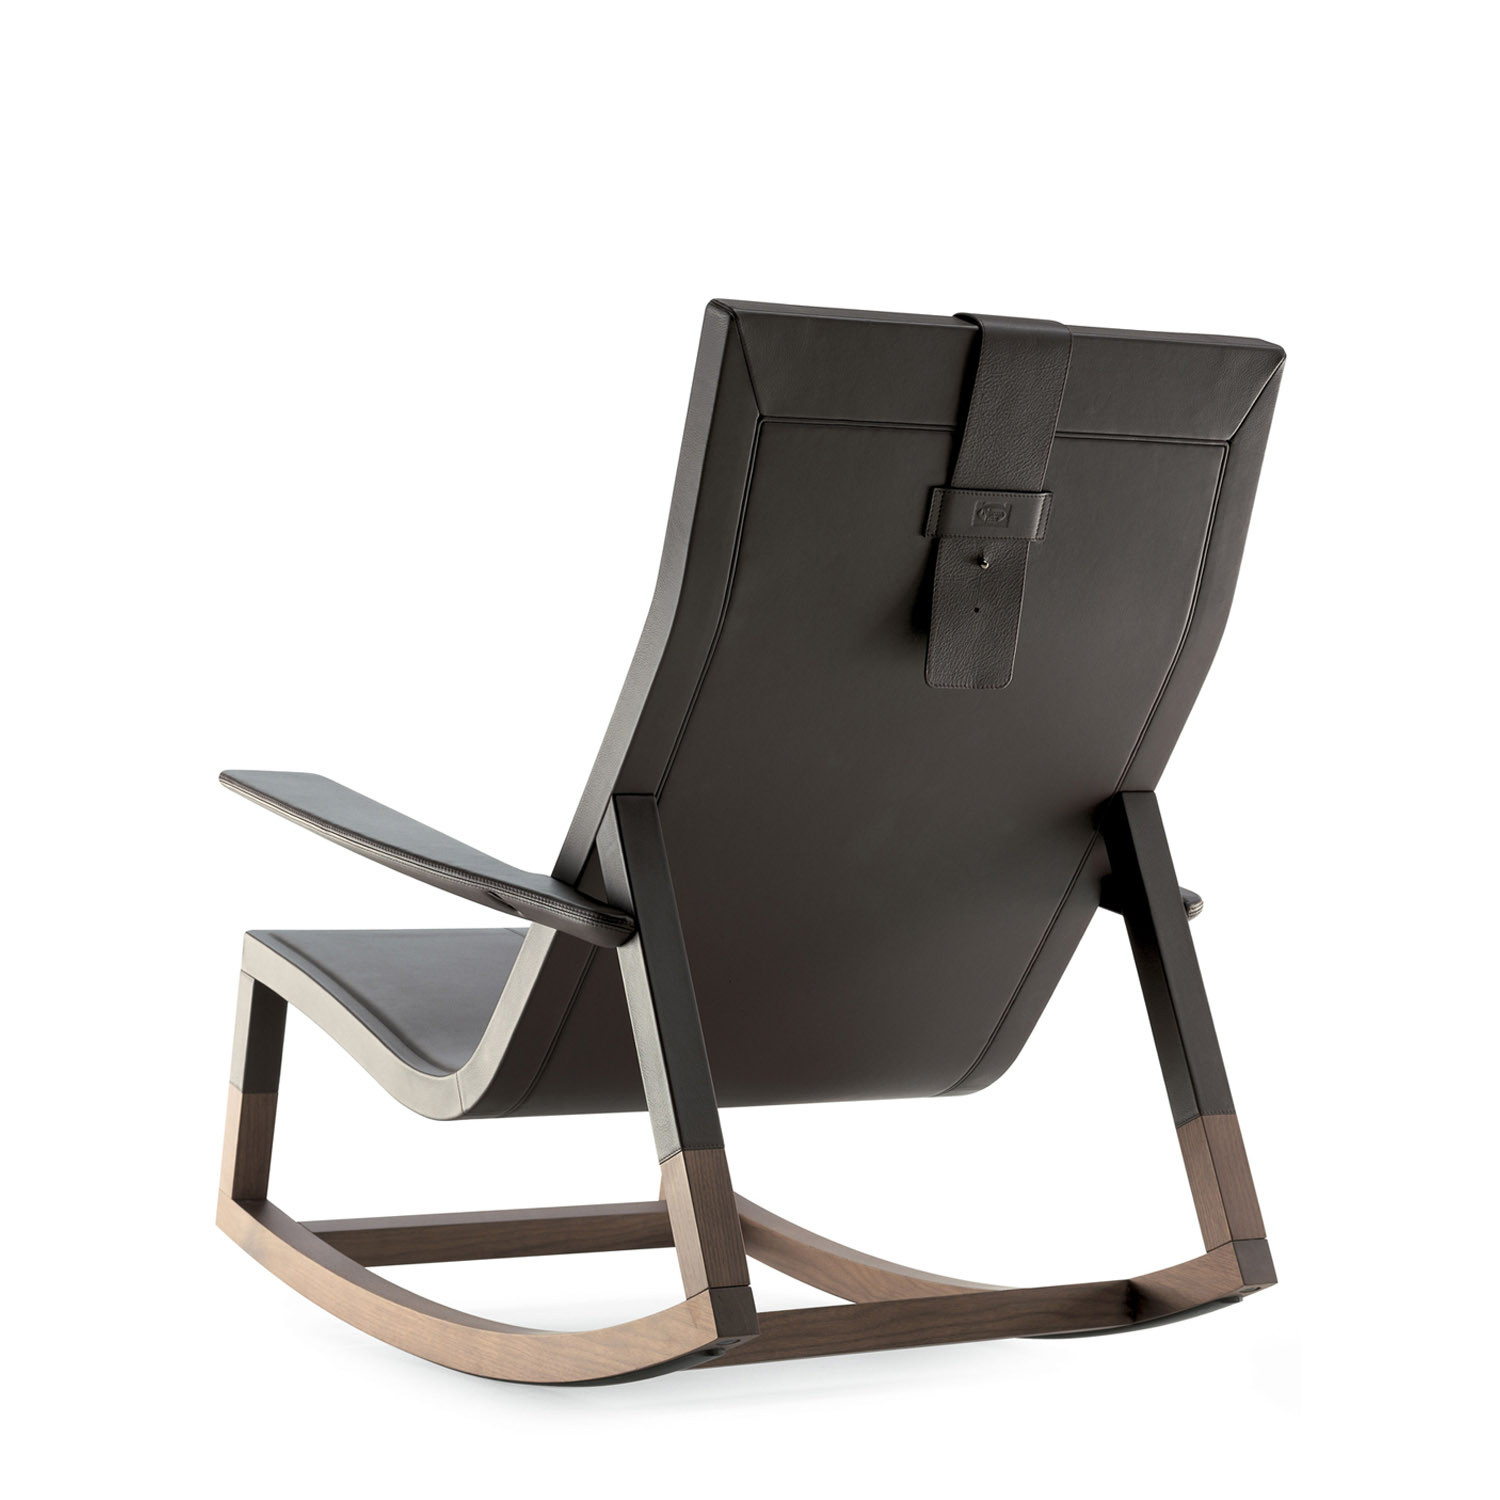 Don'do Designer Rocking Chair